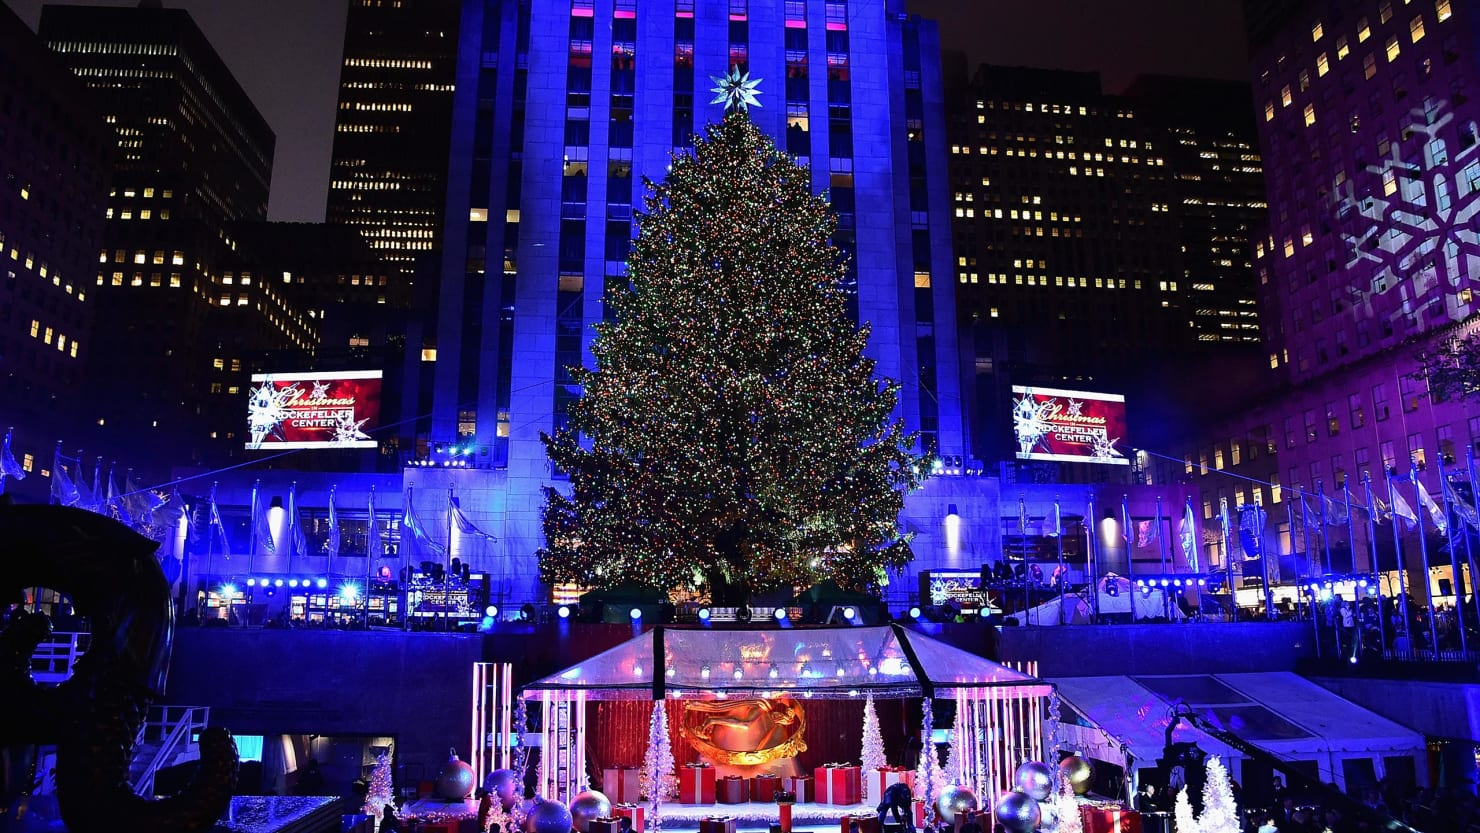 2017 Rockefeller Center Christmas Tree Lighting Ceremony: How to ...